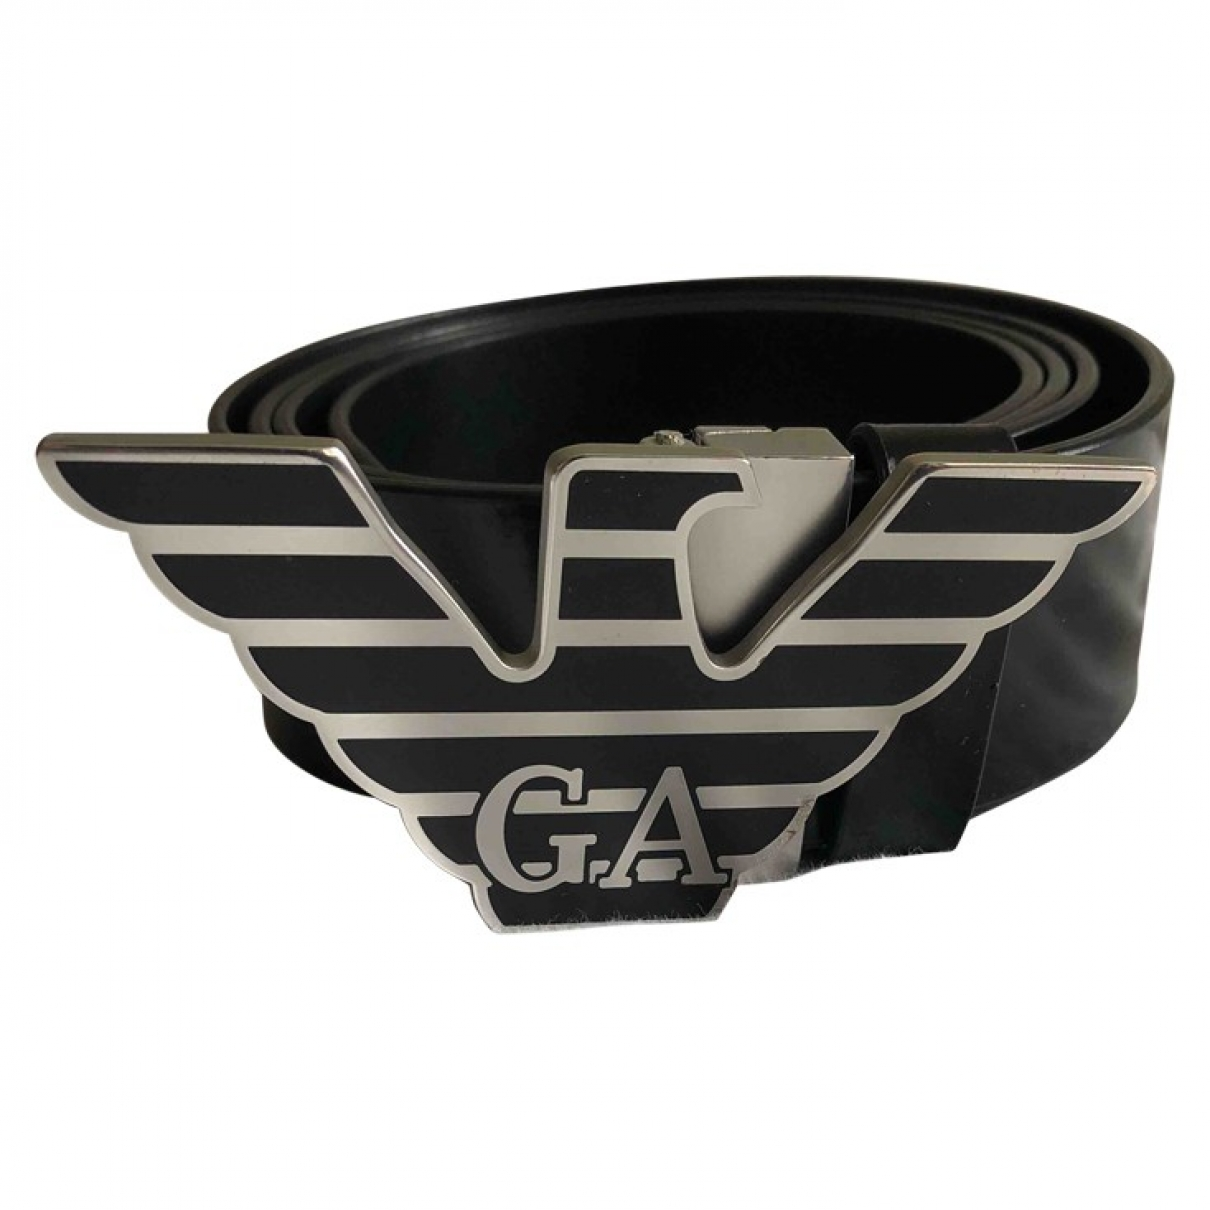 Emporio Armani \N Black Leather belt for Men 31 Inches